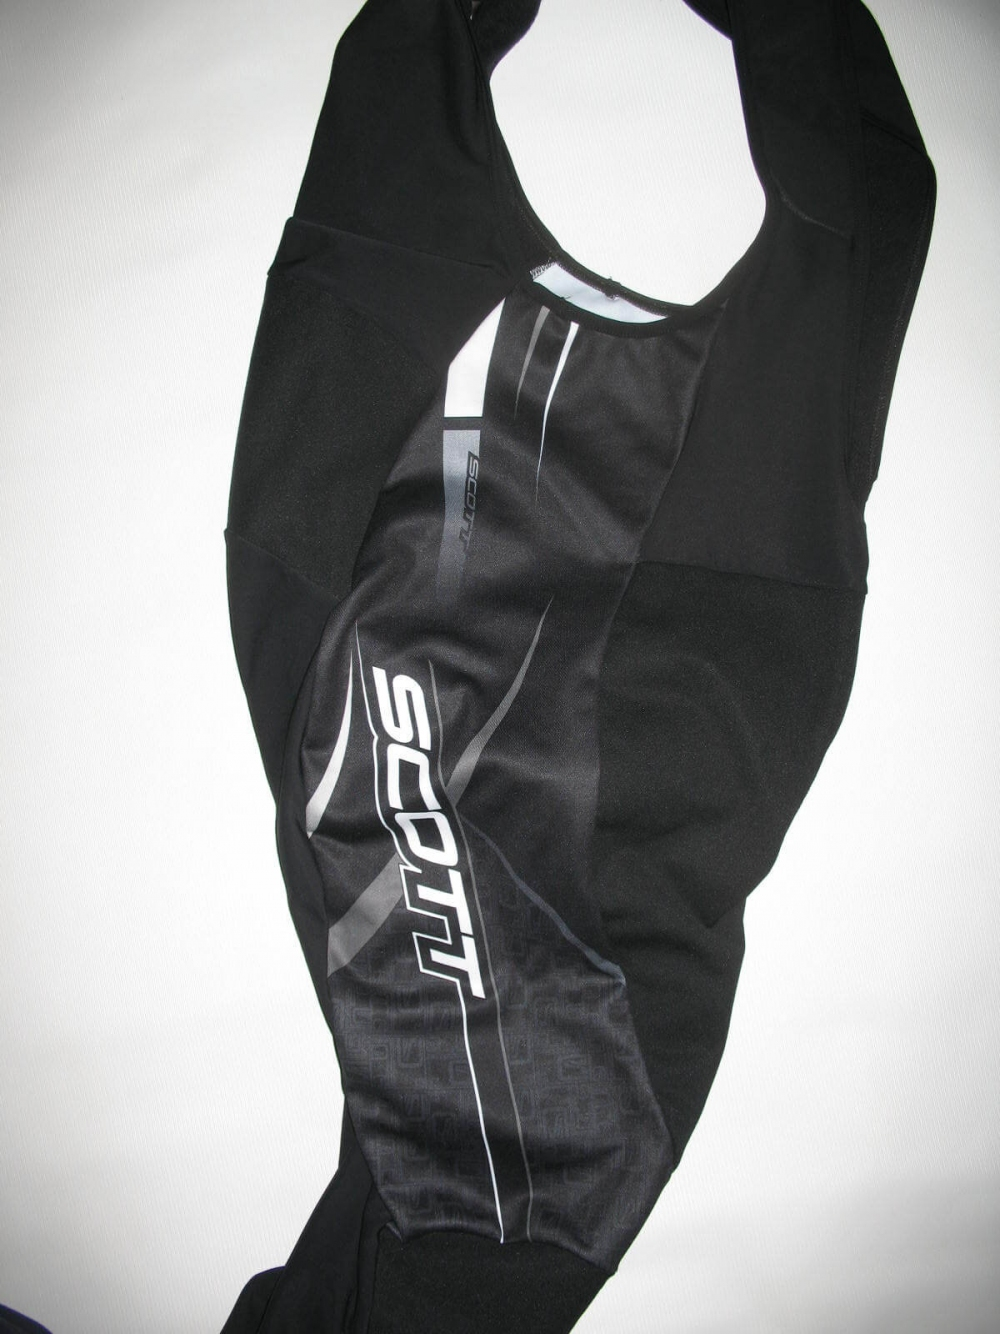 Штаны SCOTT cycling bib pants (размер L) - 4